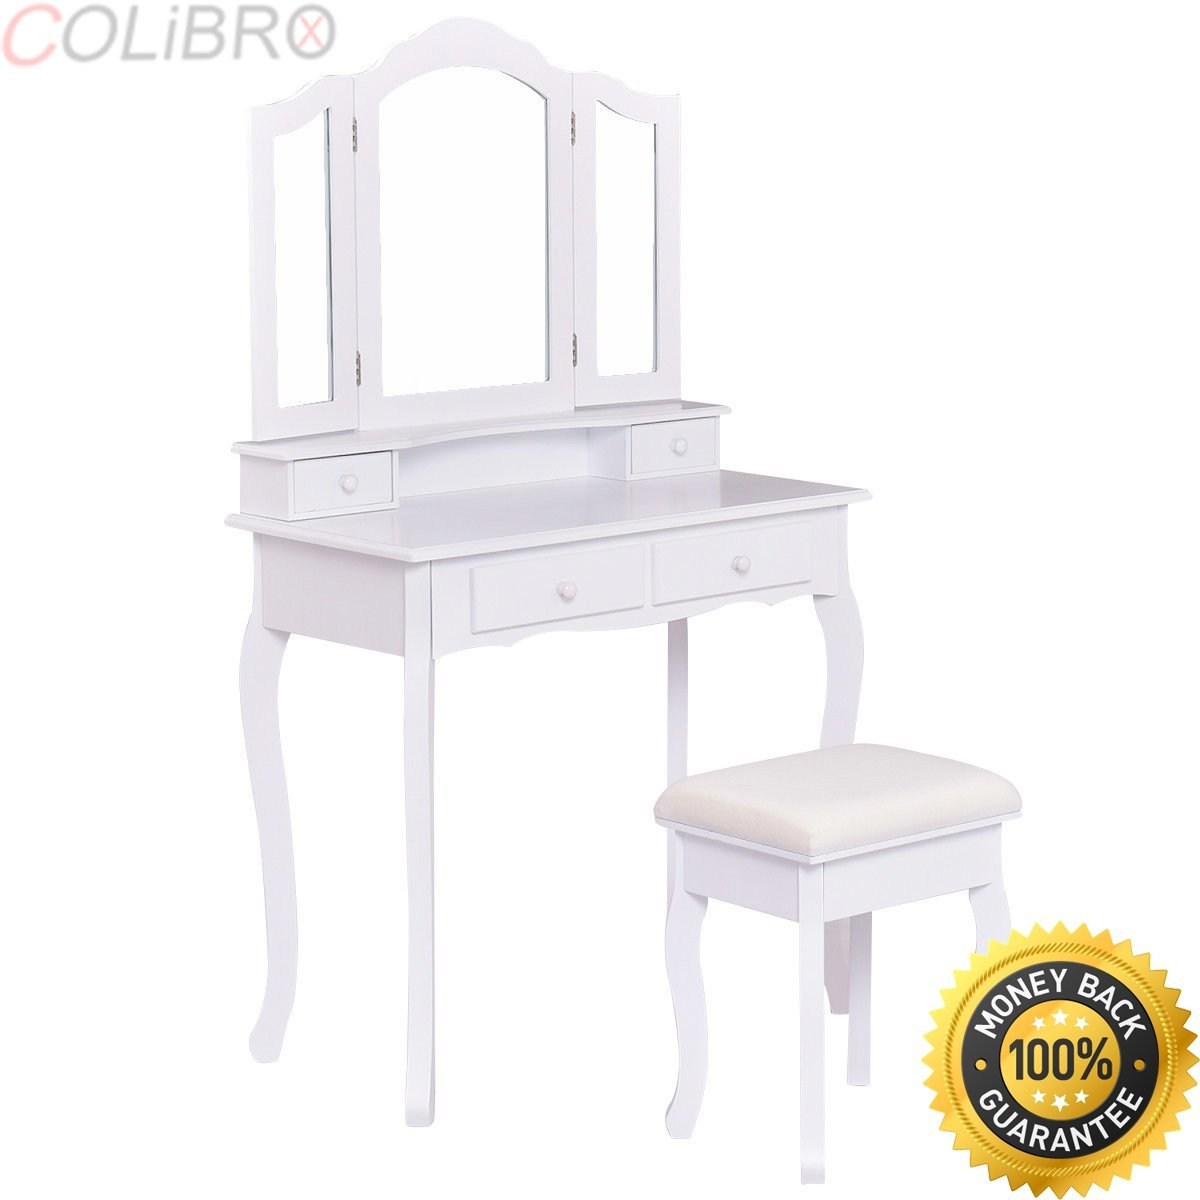 COLIBROX--White Vanity Makeup Dressing Table Set W/Stool 4 Drawer&Mirror Jewelry Wood Desk. bathroom wood vanity makeup dressing table stool set white. amazon vanity table jewelry makeup desk.